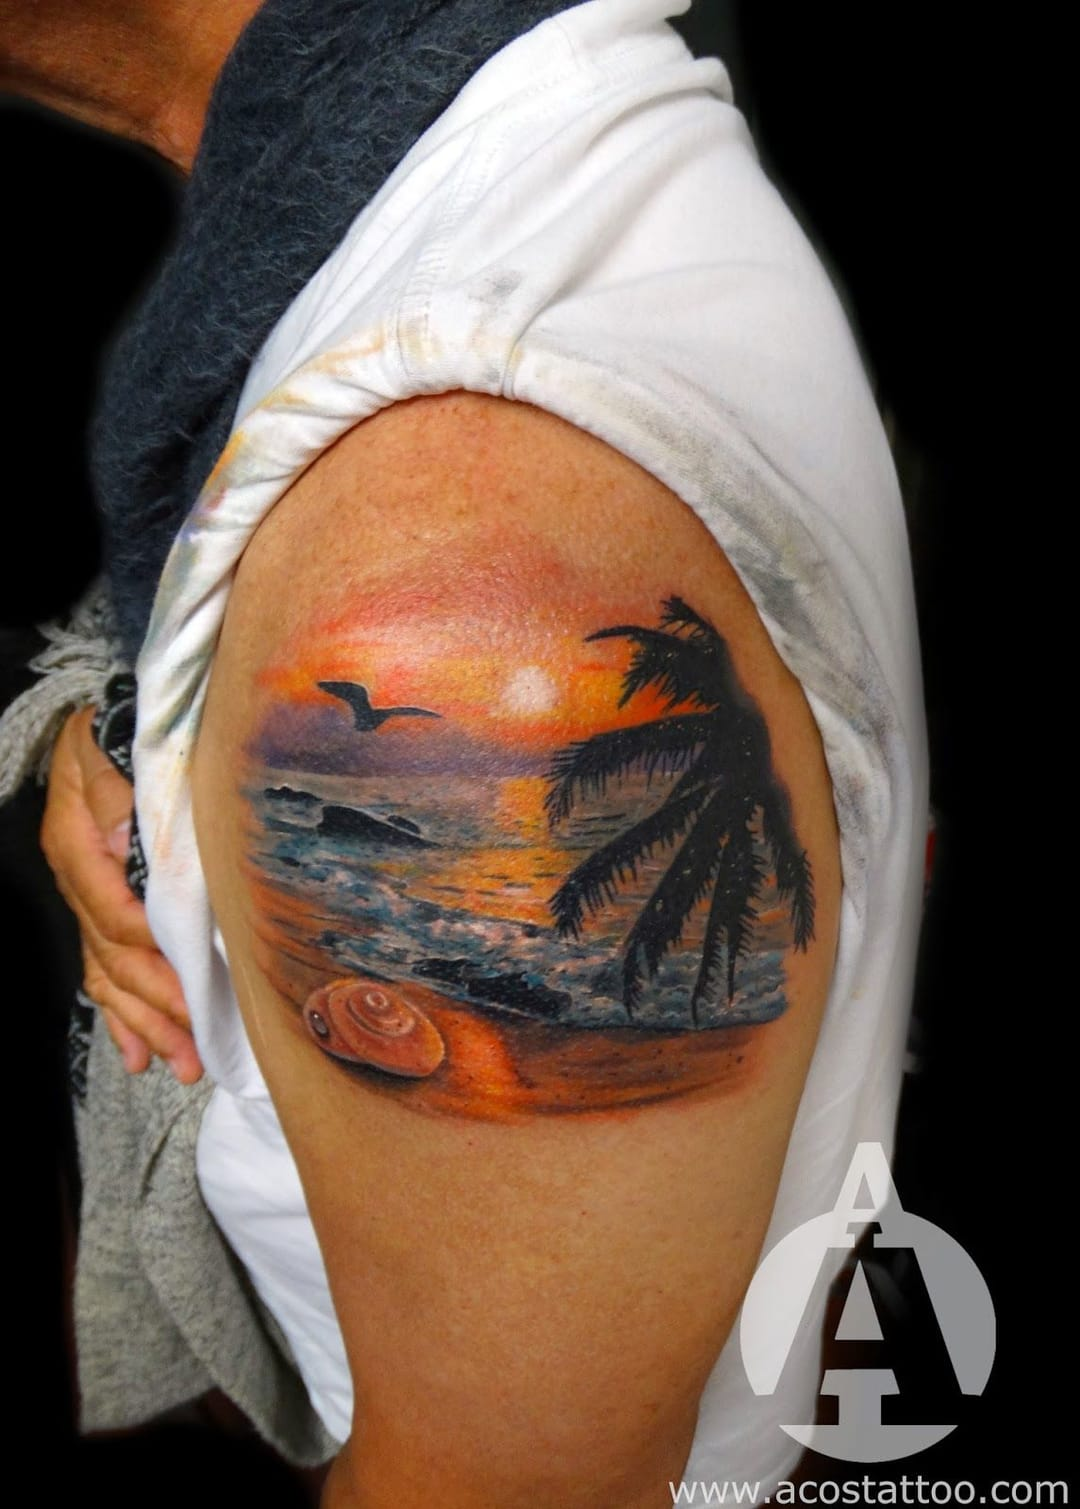 This one by Andres Acosta is just beautiful with this seashell on the forefront.